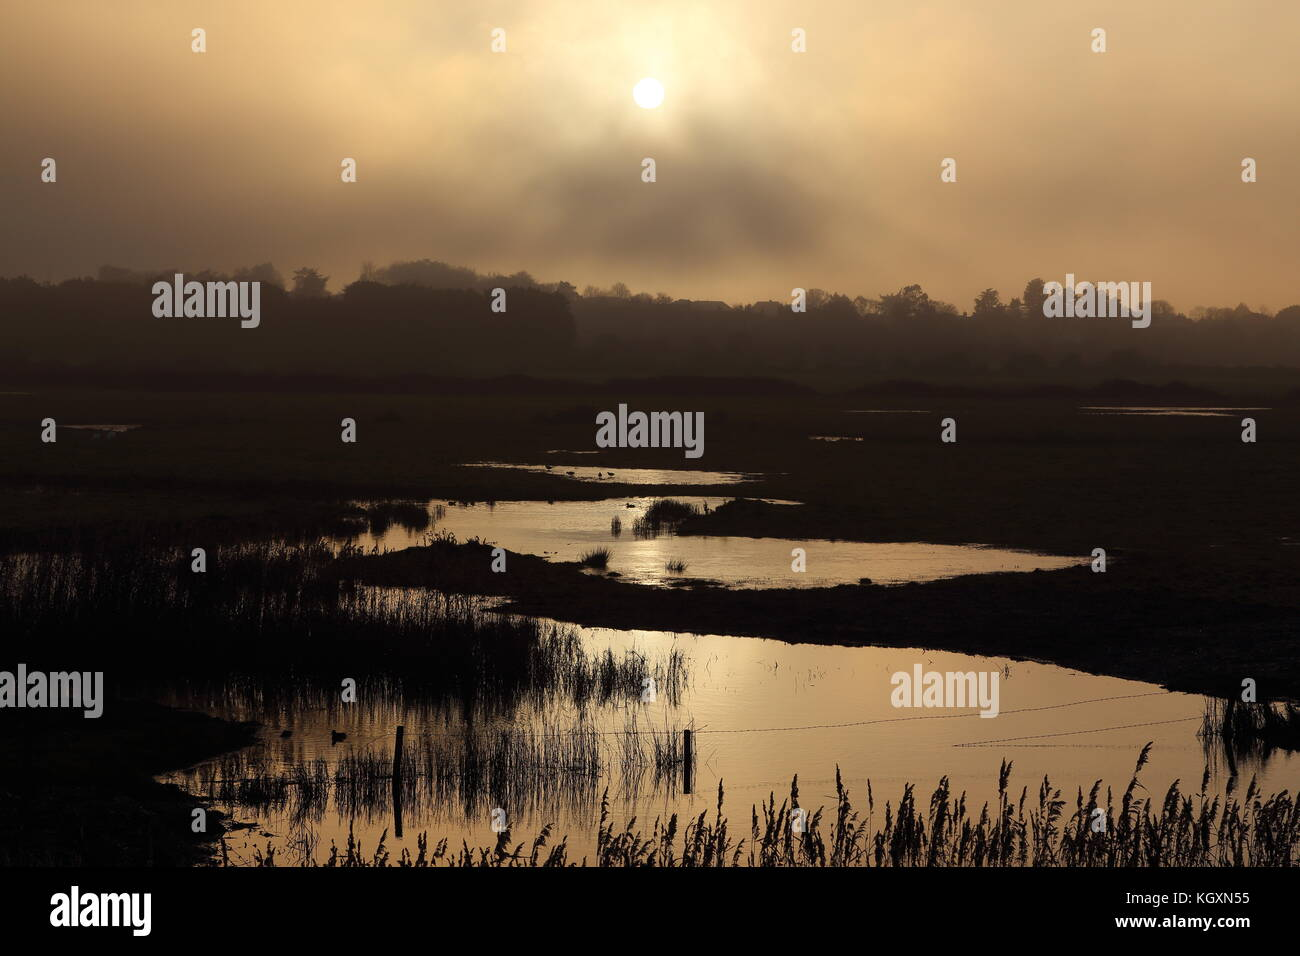 Sunset over wetlands in North Norfolk, UK.  Sunlight reflected in marshland waters.  Wildfowl roosting and feeding. - Stock Image